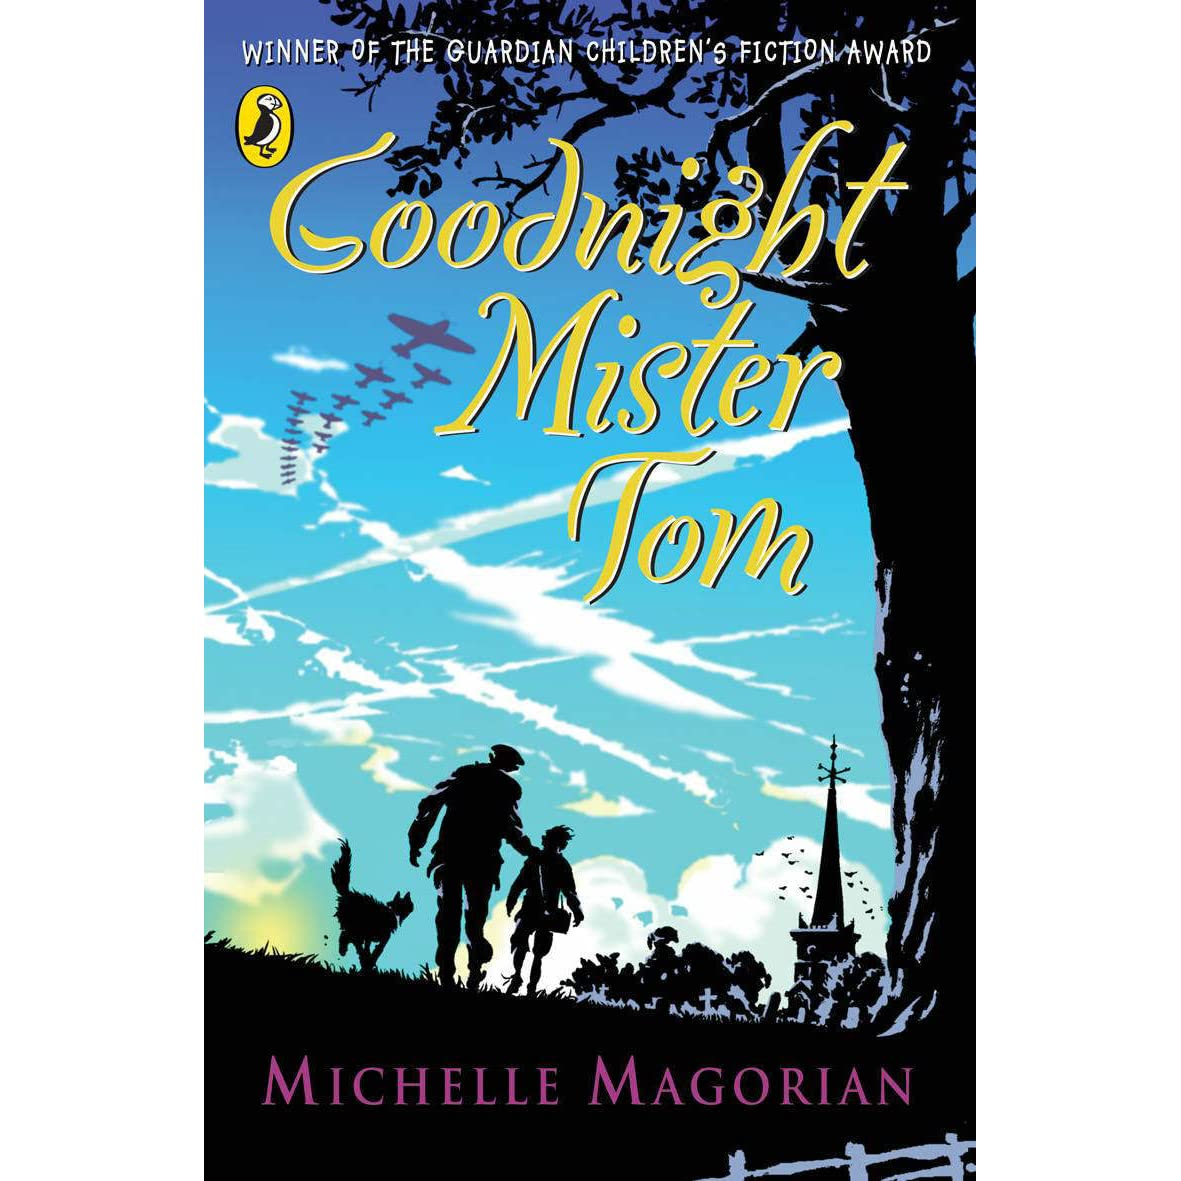 goodnight mr tom by michelle magorian Michelle magorian (born 6 november 1947) is an english author of children's booksshe is best known for her first novel, goodnight mister tom, which won the 1982 guardian prize for british children's books and has been adapted several times for screen or stage.